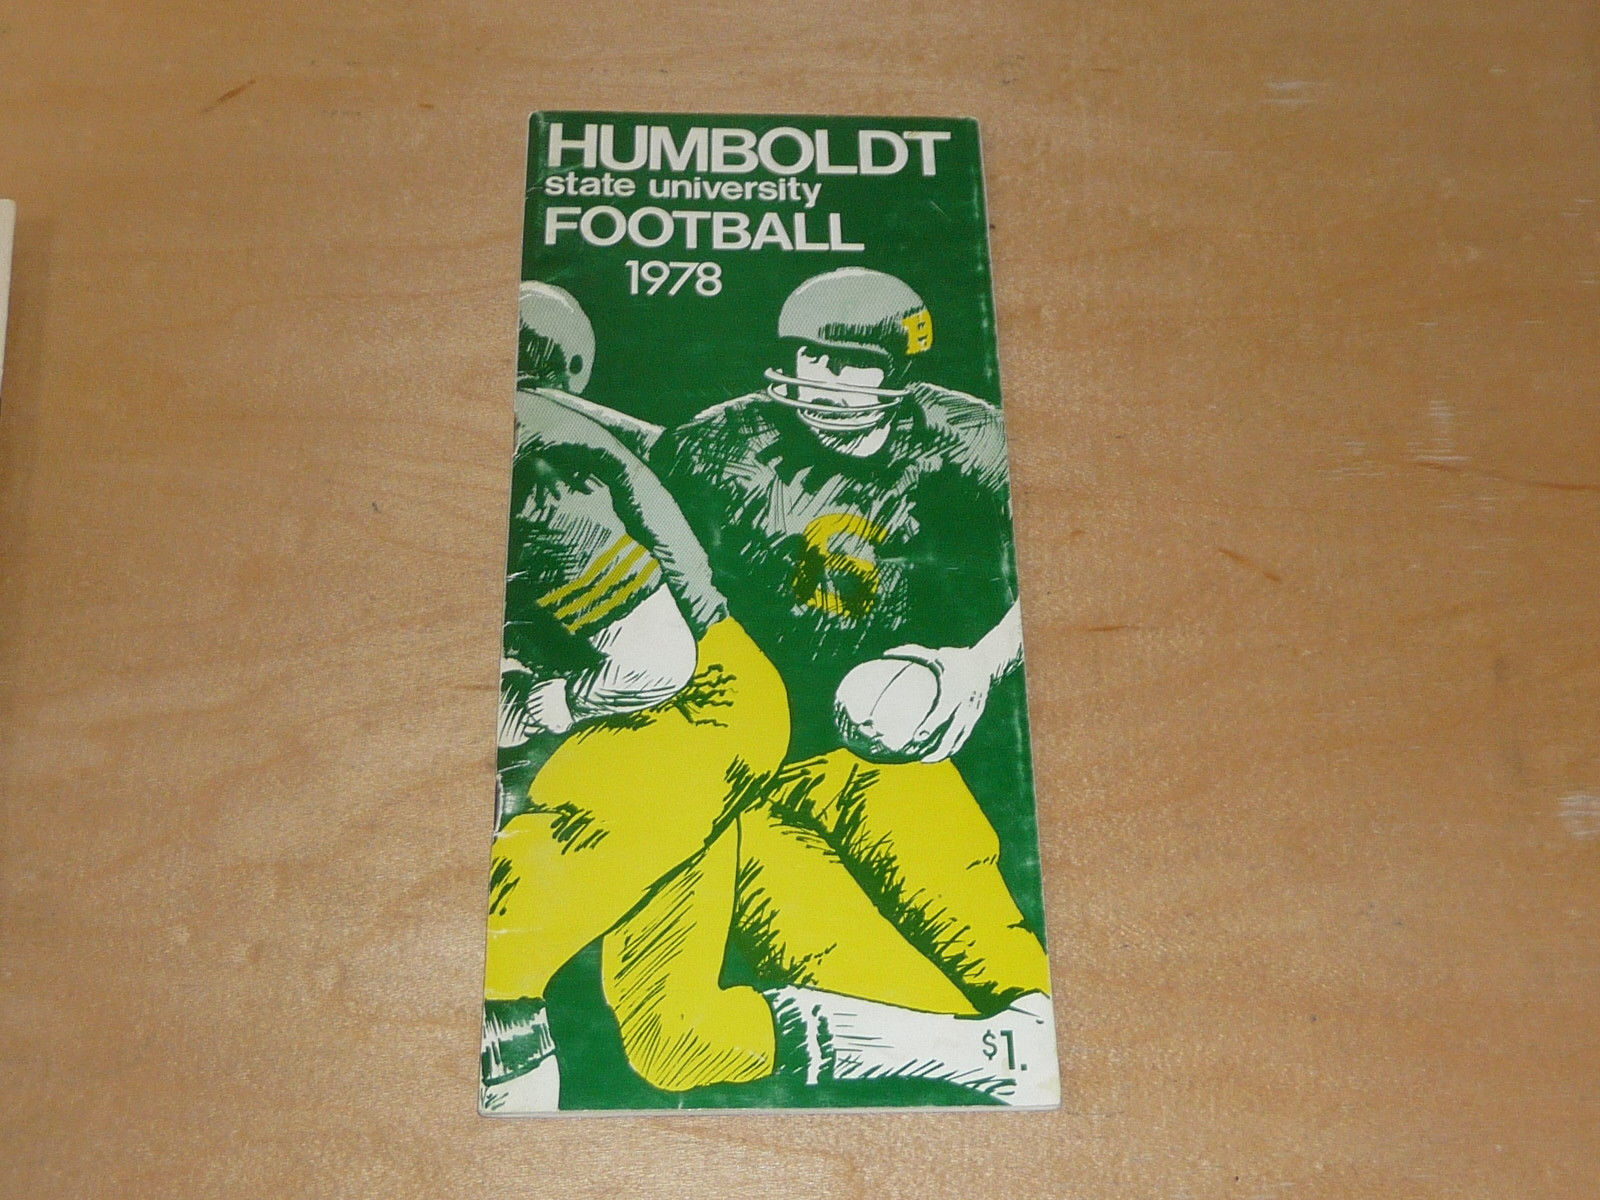 Details About 1978 Humboldt State University Ca College Football Media Guide Ex Plus Box 19